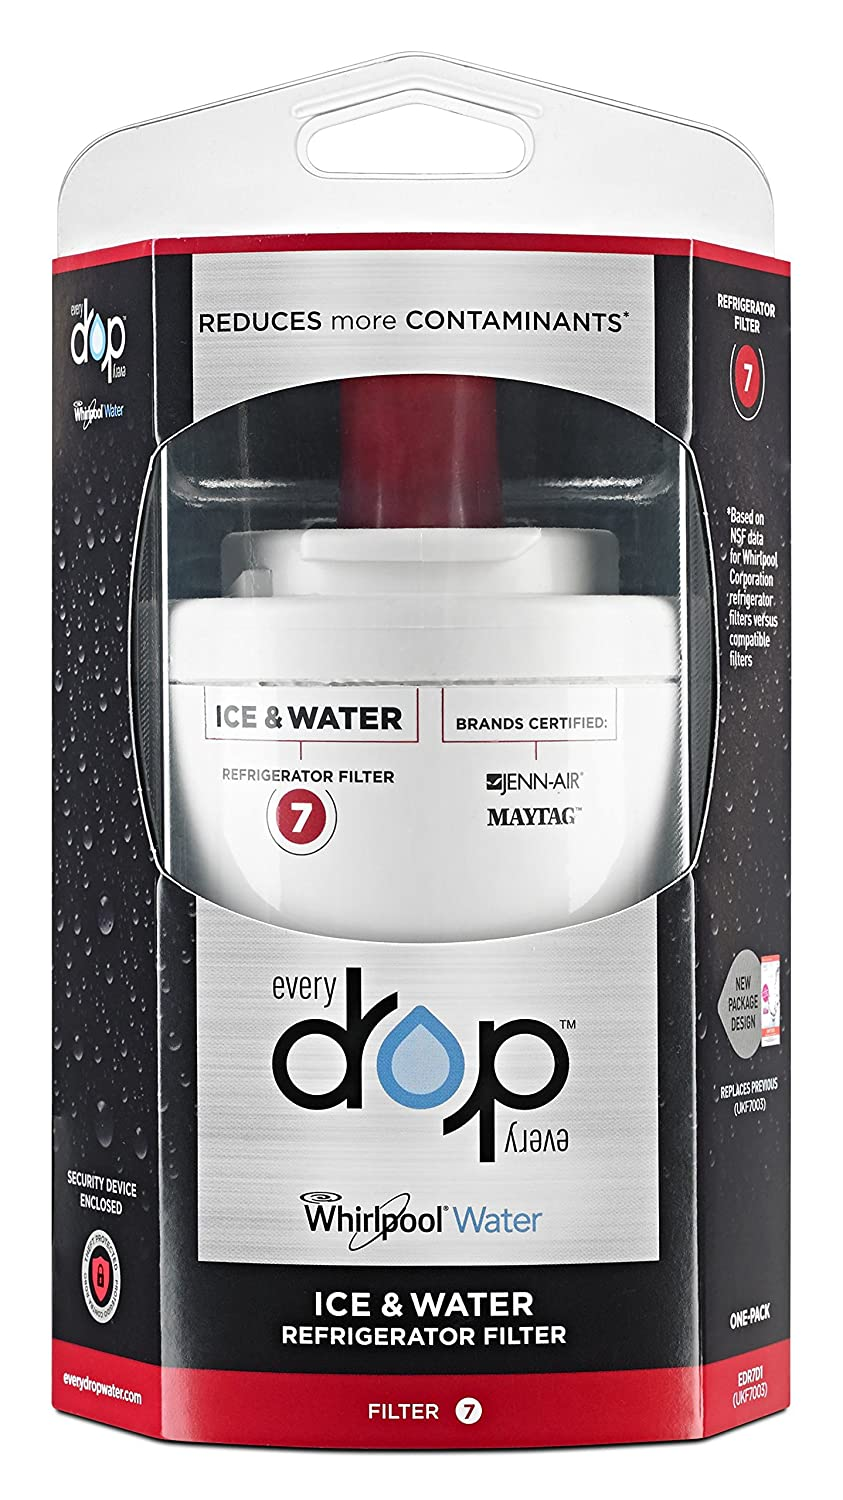 EveryDrop by Whirlpool Refrigerator Water Filter 7 (Pack of 1)